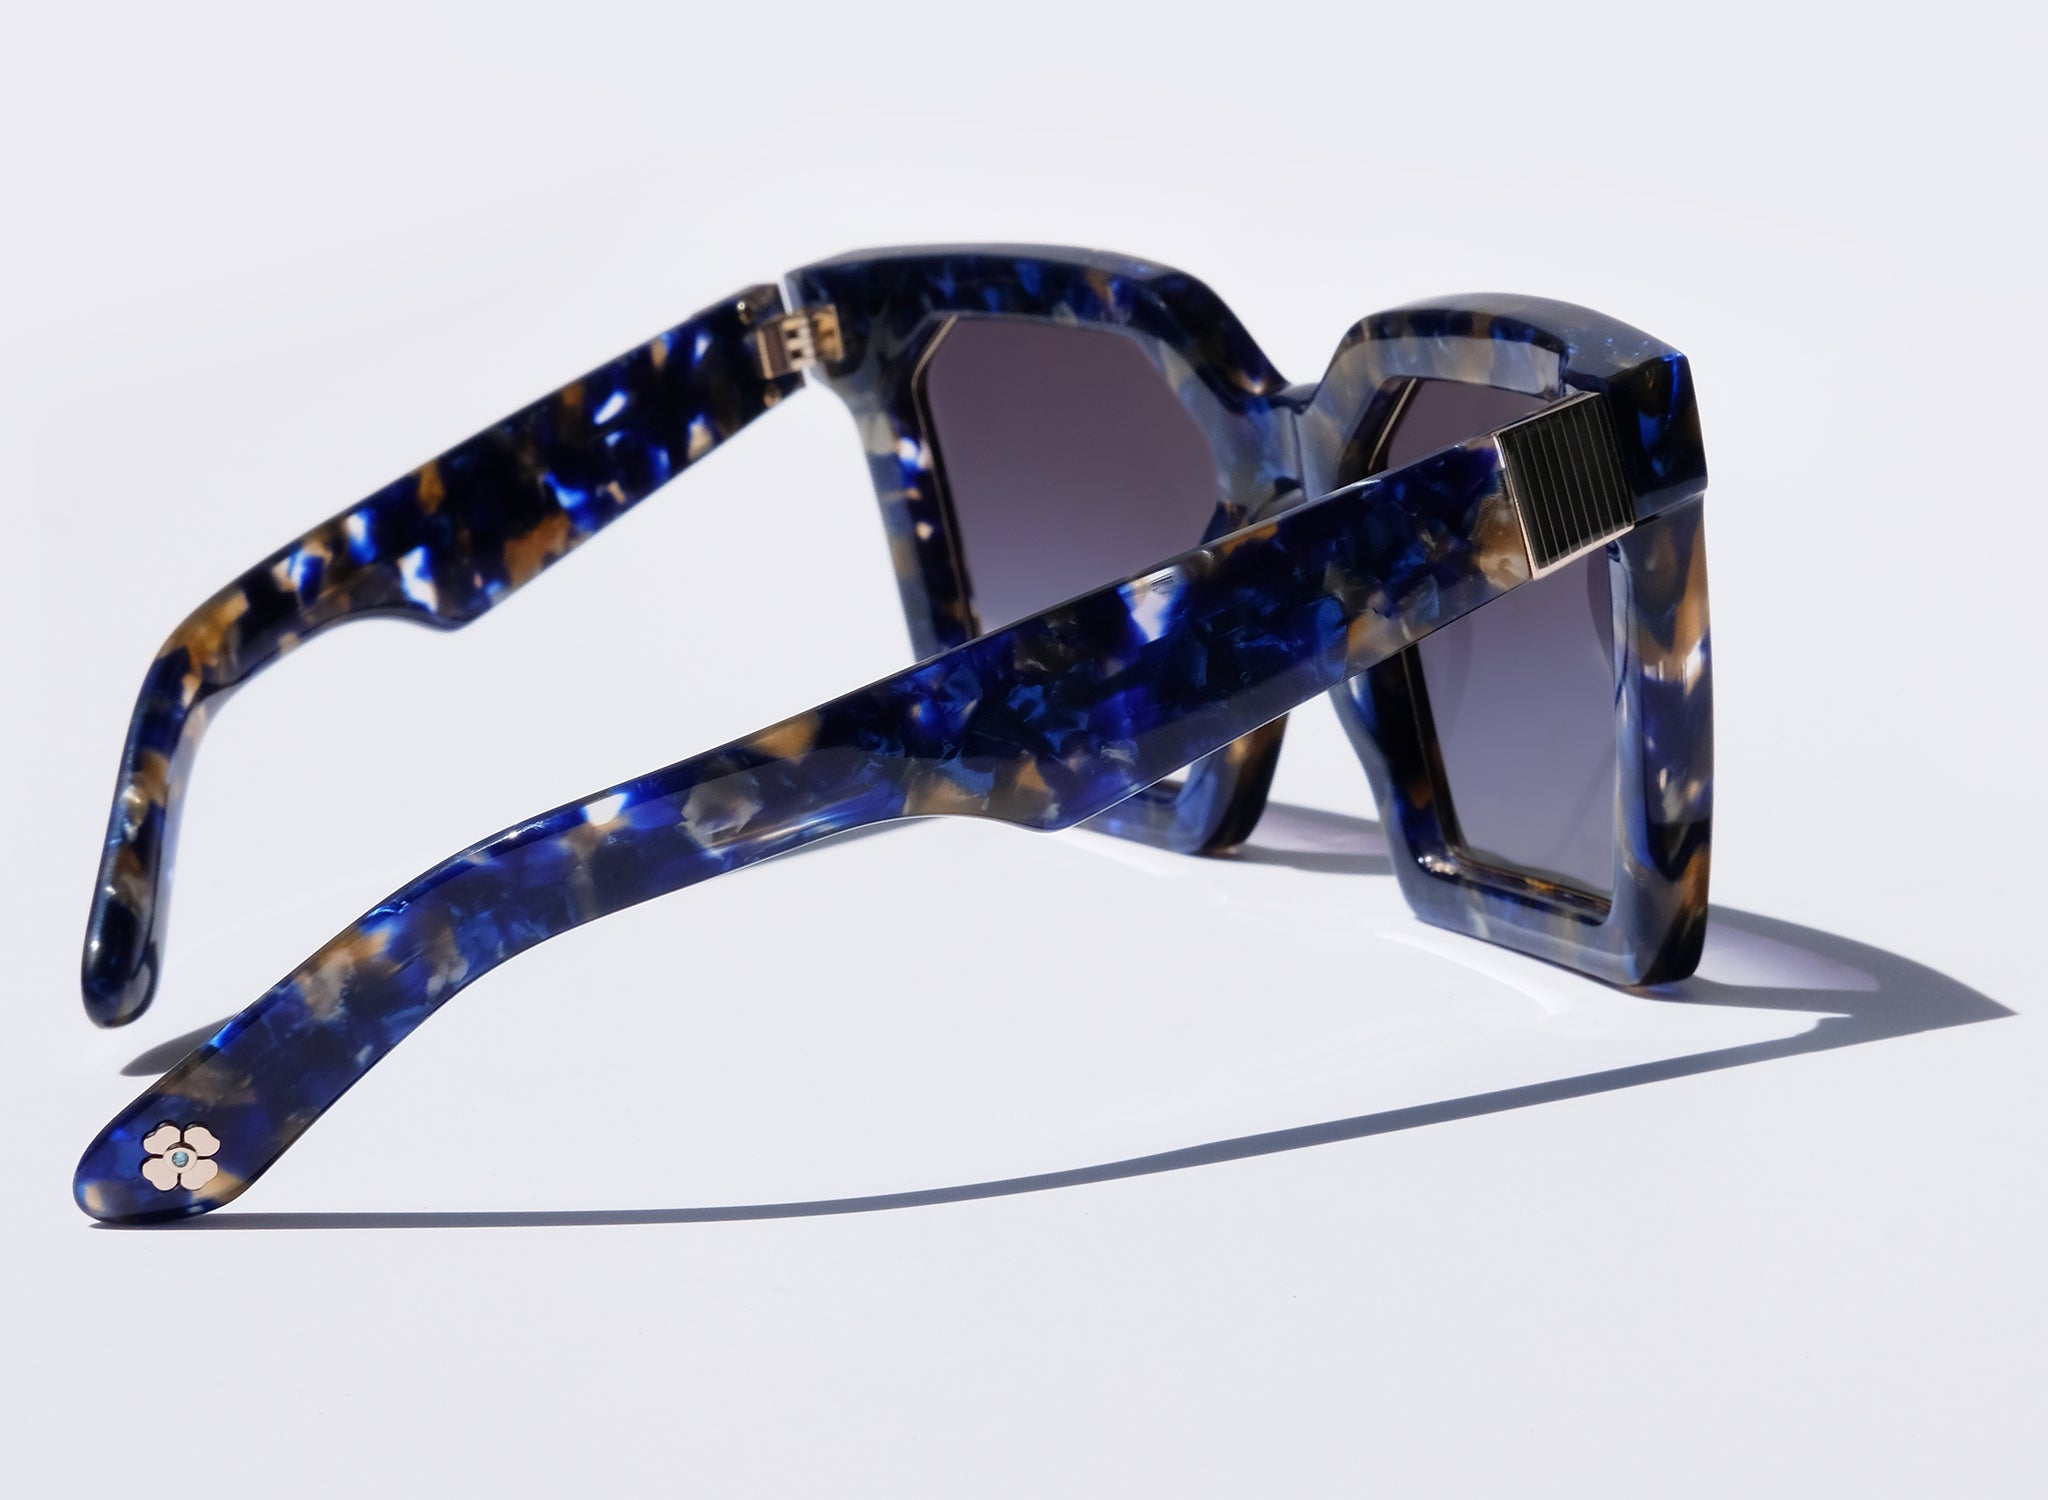 OVERSIZED BLUE SQUARE SUNGLASSES, FLOWER CHARM TEMPLE DETAIL